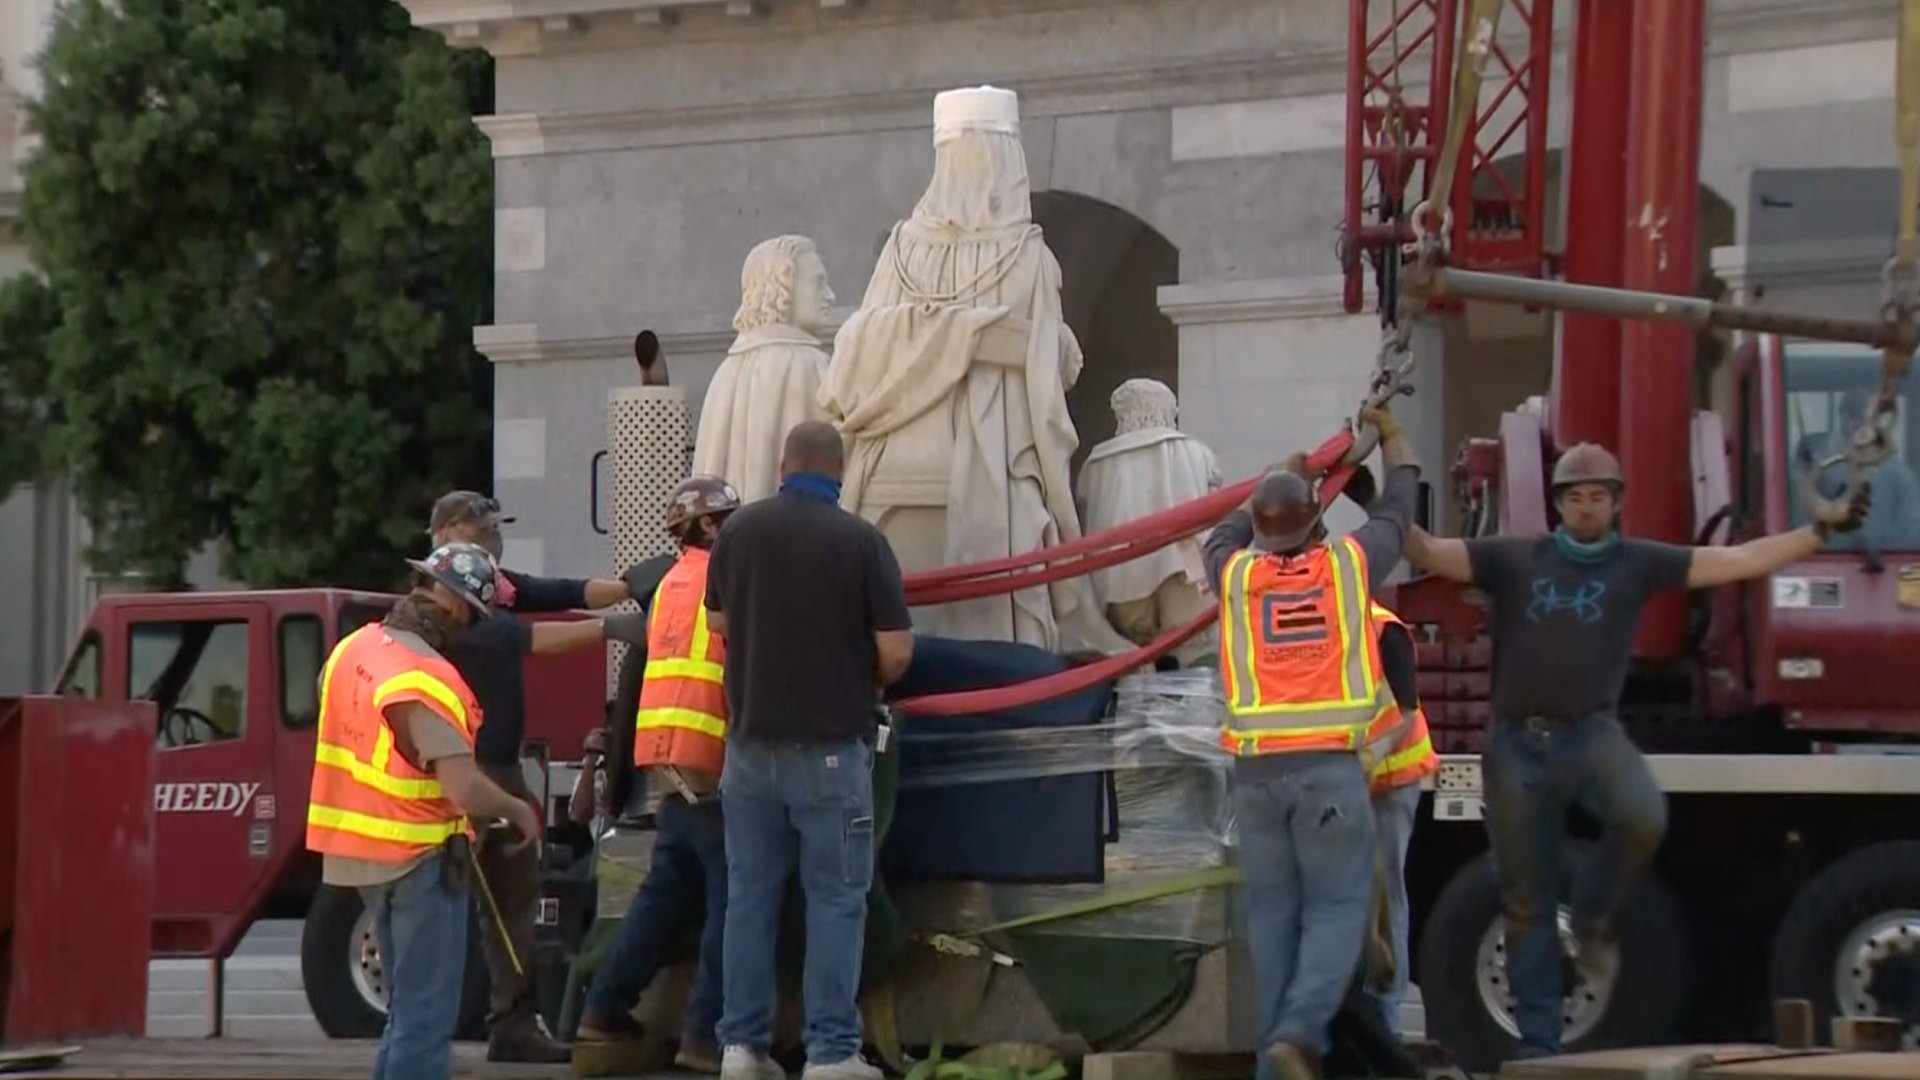 Crews remove a statue of Christopher Columbus and Queen Isabella from the California state Capitol on July 7, 2020. (KCRA via CNN)